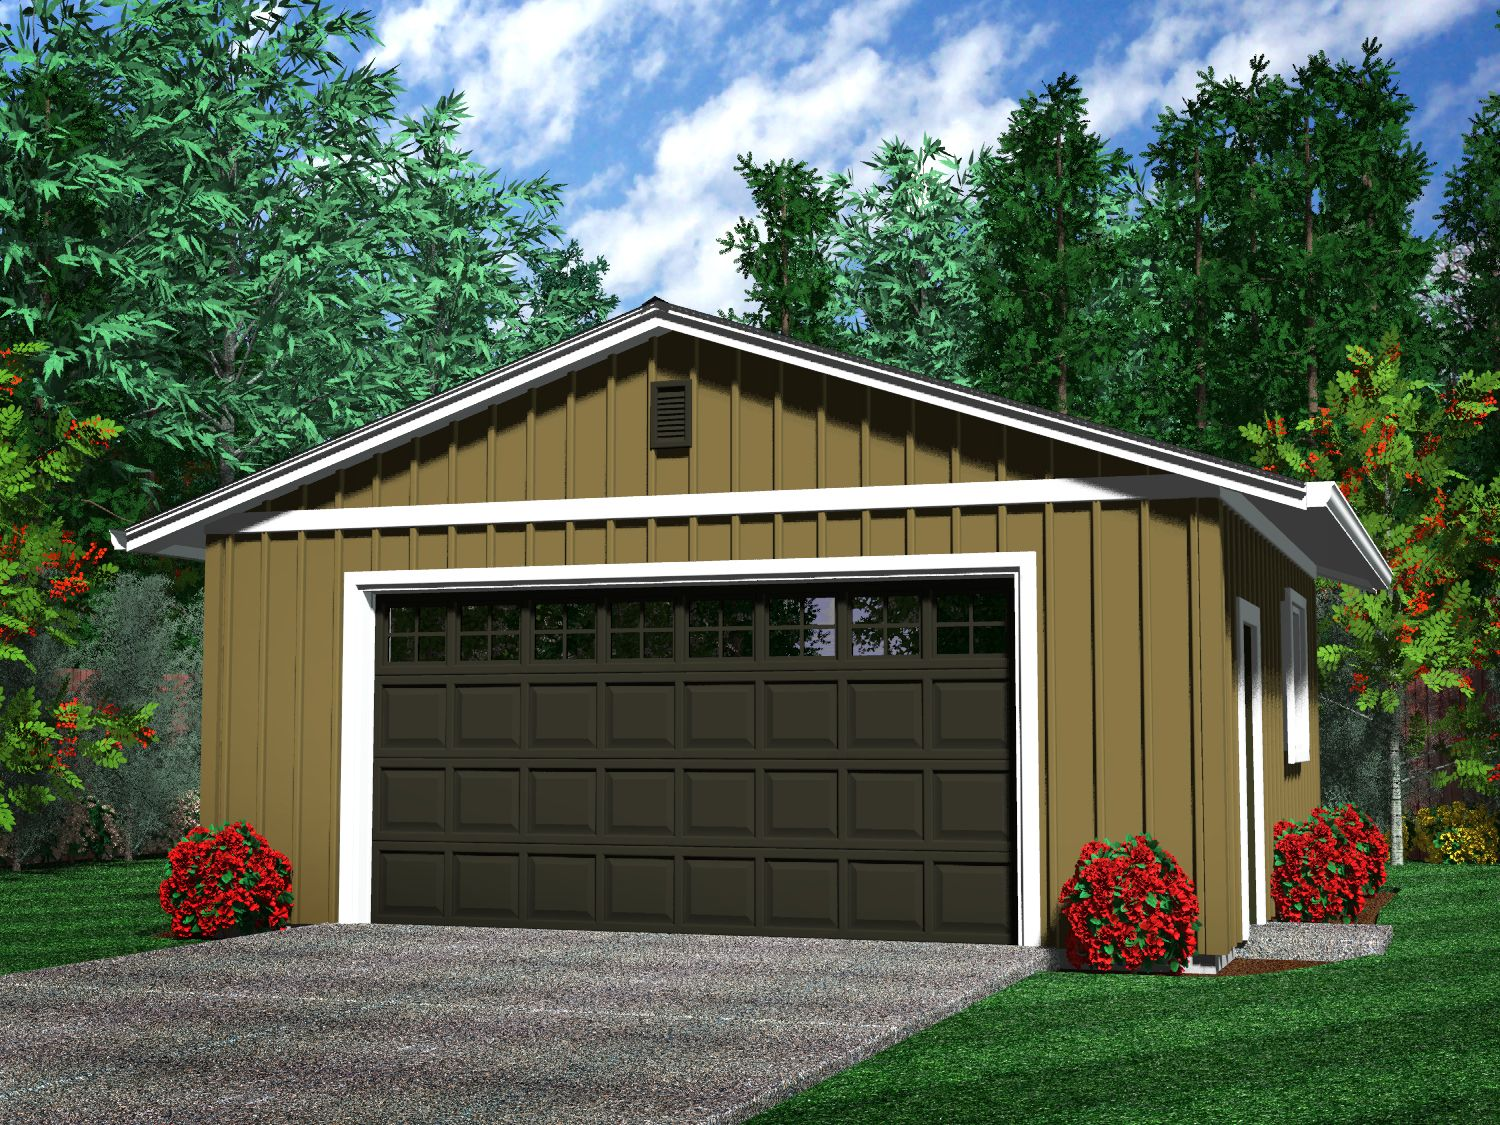 More Ideas Below How To Build Detached Garage Ideas Detached Garage 2 Car With Loft Plans Man Cave Detached Garage Plans Garage Plans Detached Detached Garage